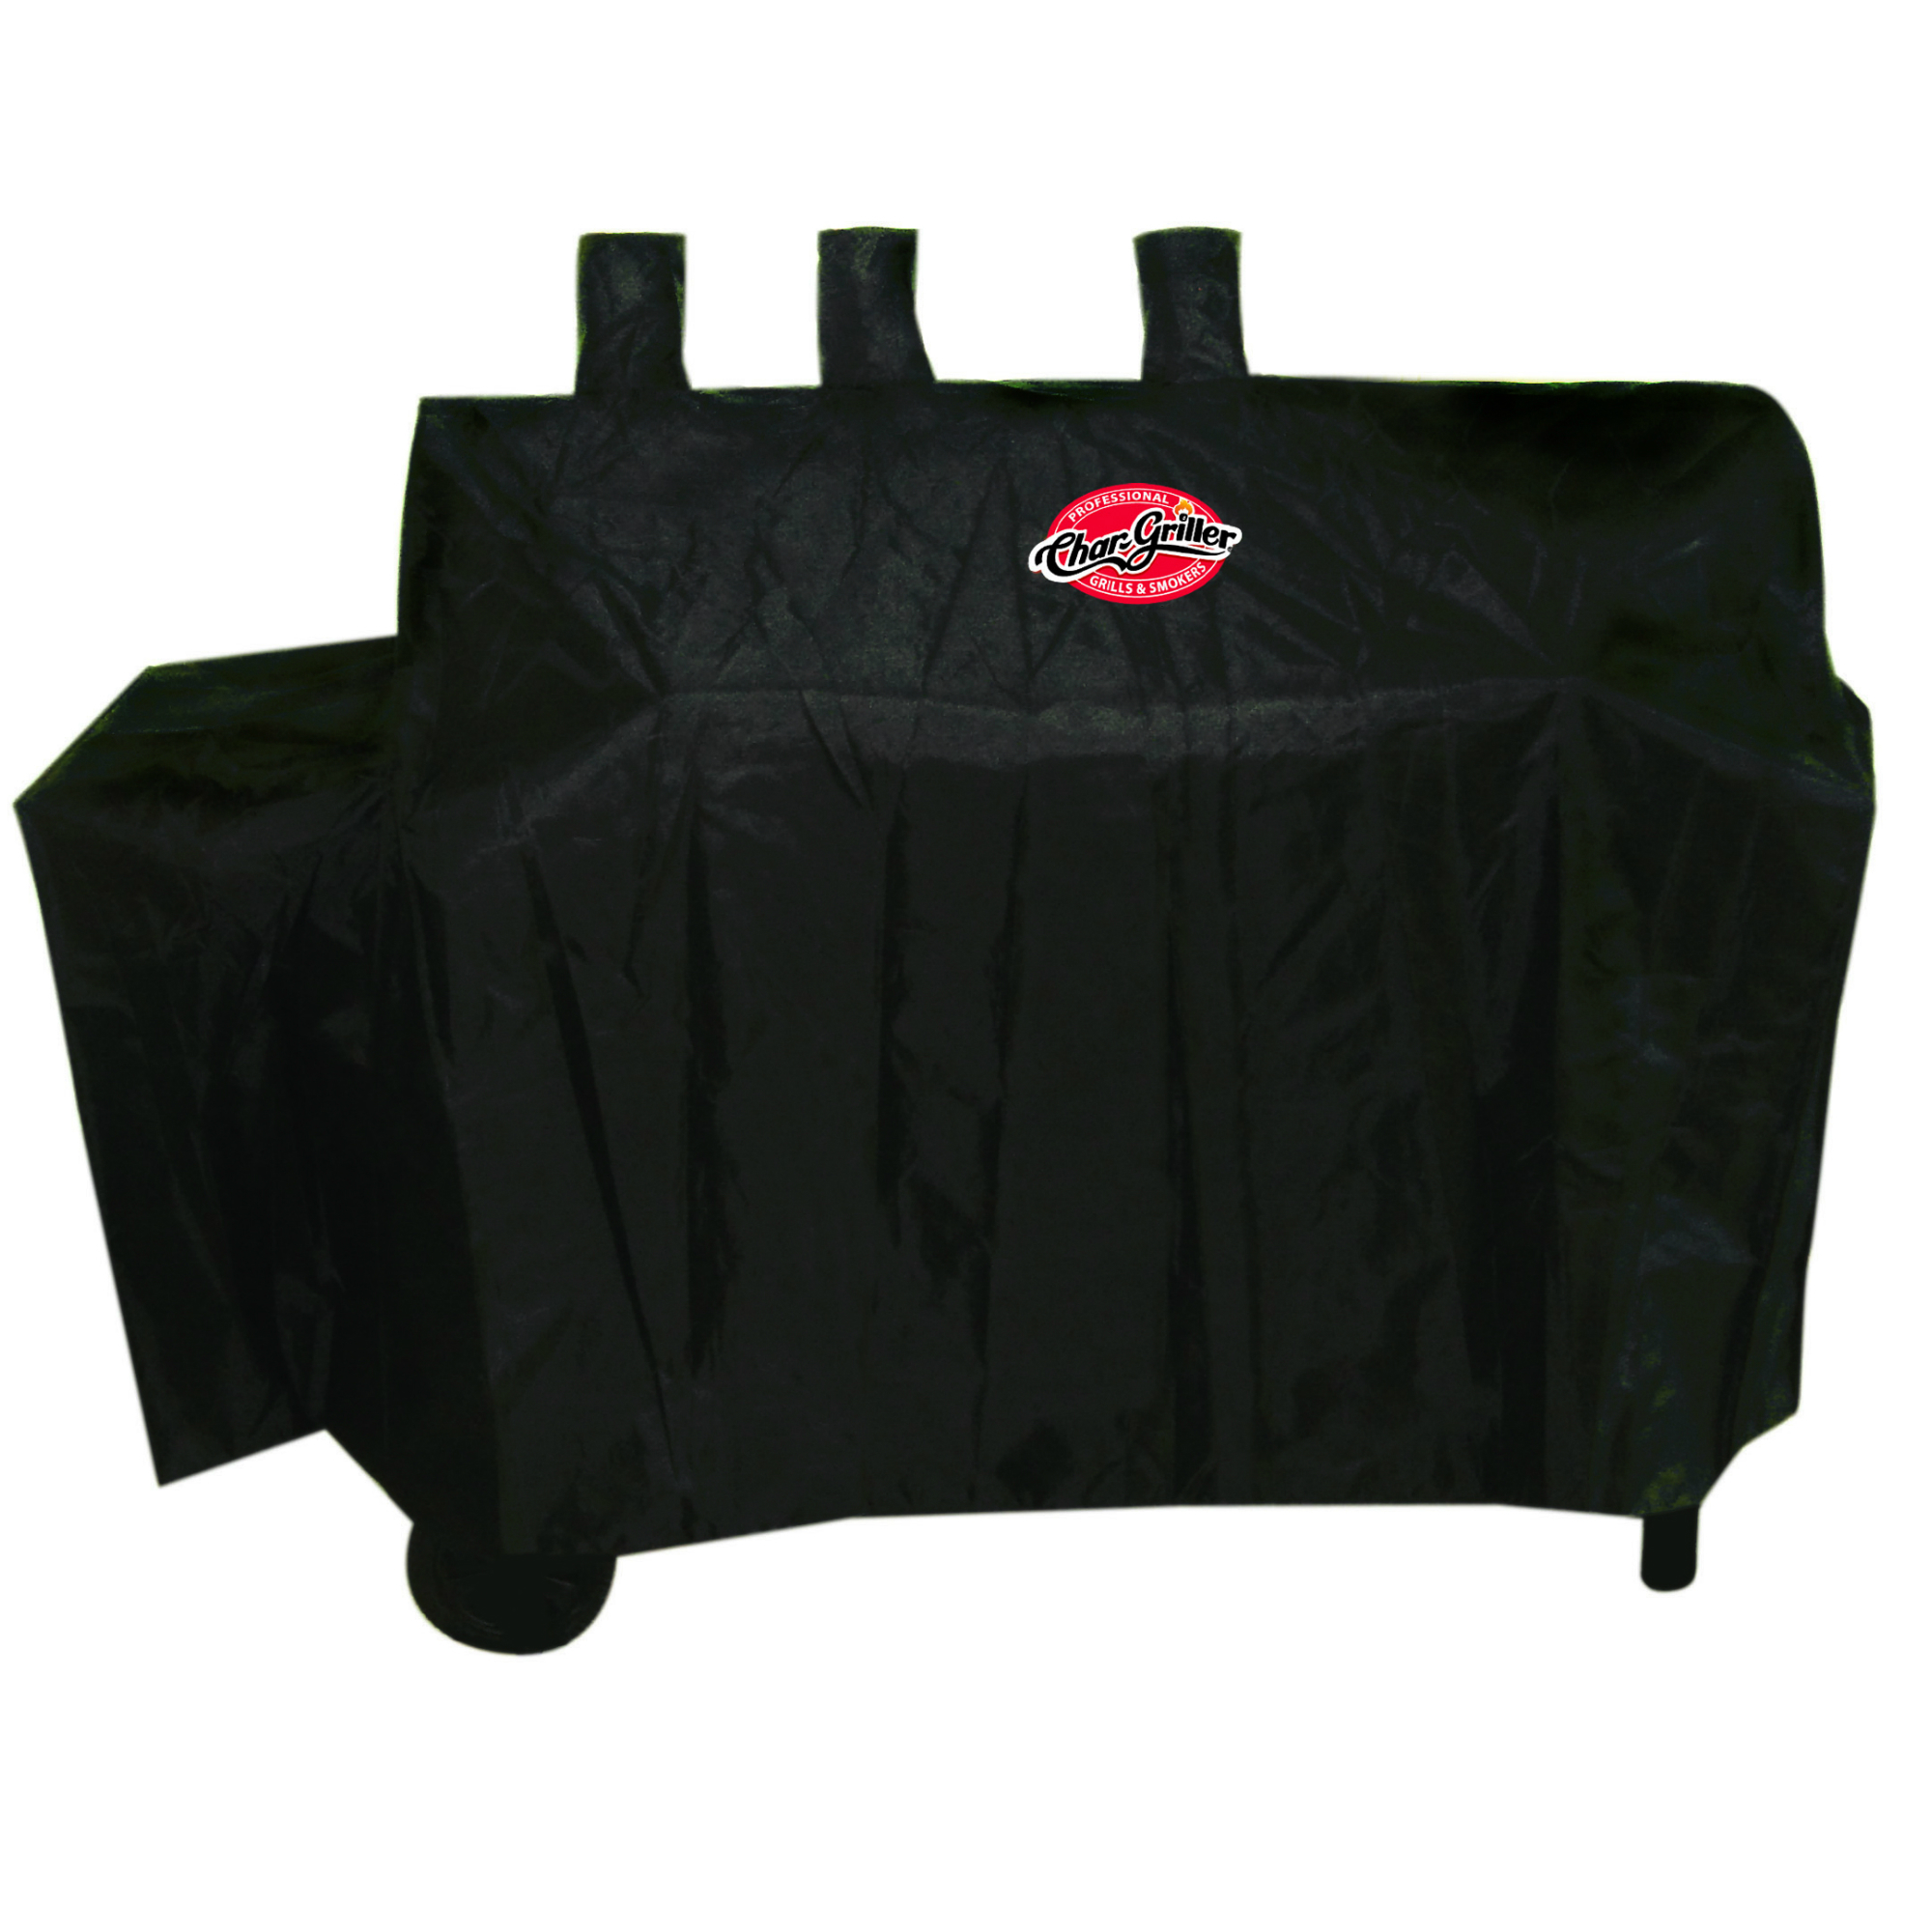 Char-Griller Dual 2 Burner Gas and Charcoal Grill Cover with Expansion Sleeve to accommodate side firebox, Black, 5055